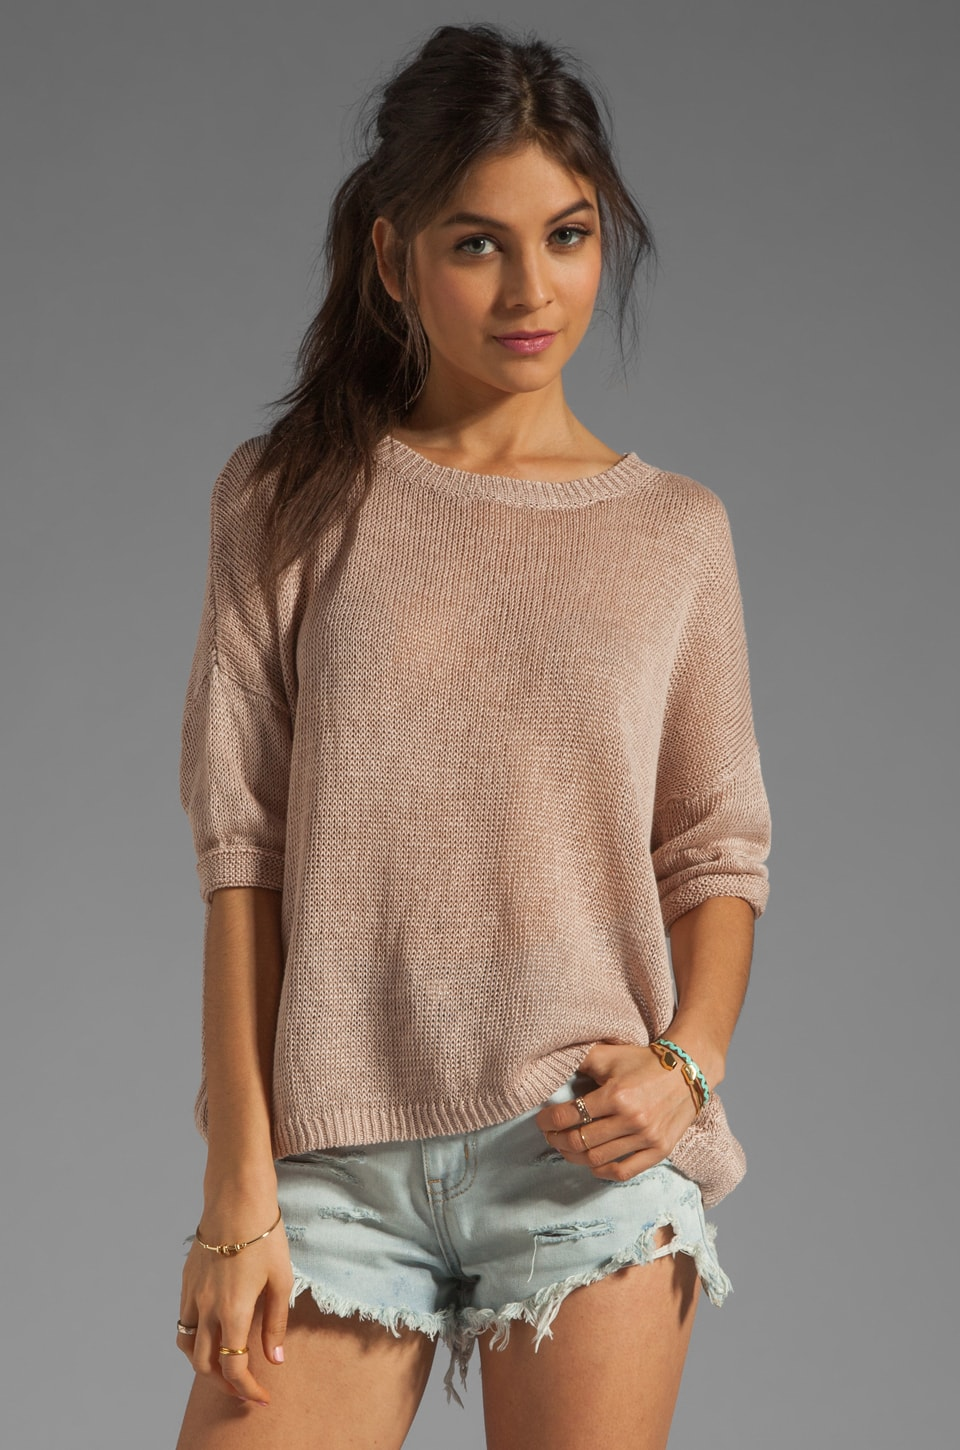 DemyLee Alexa Short Sleeve Top in Nude